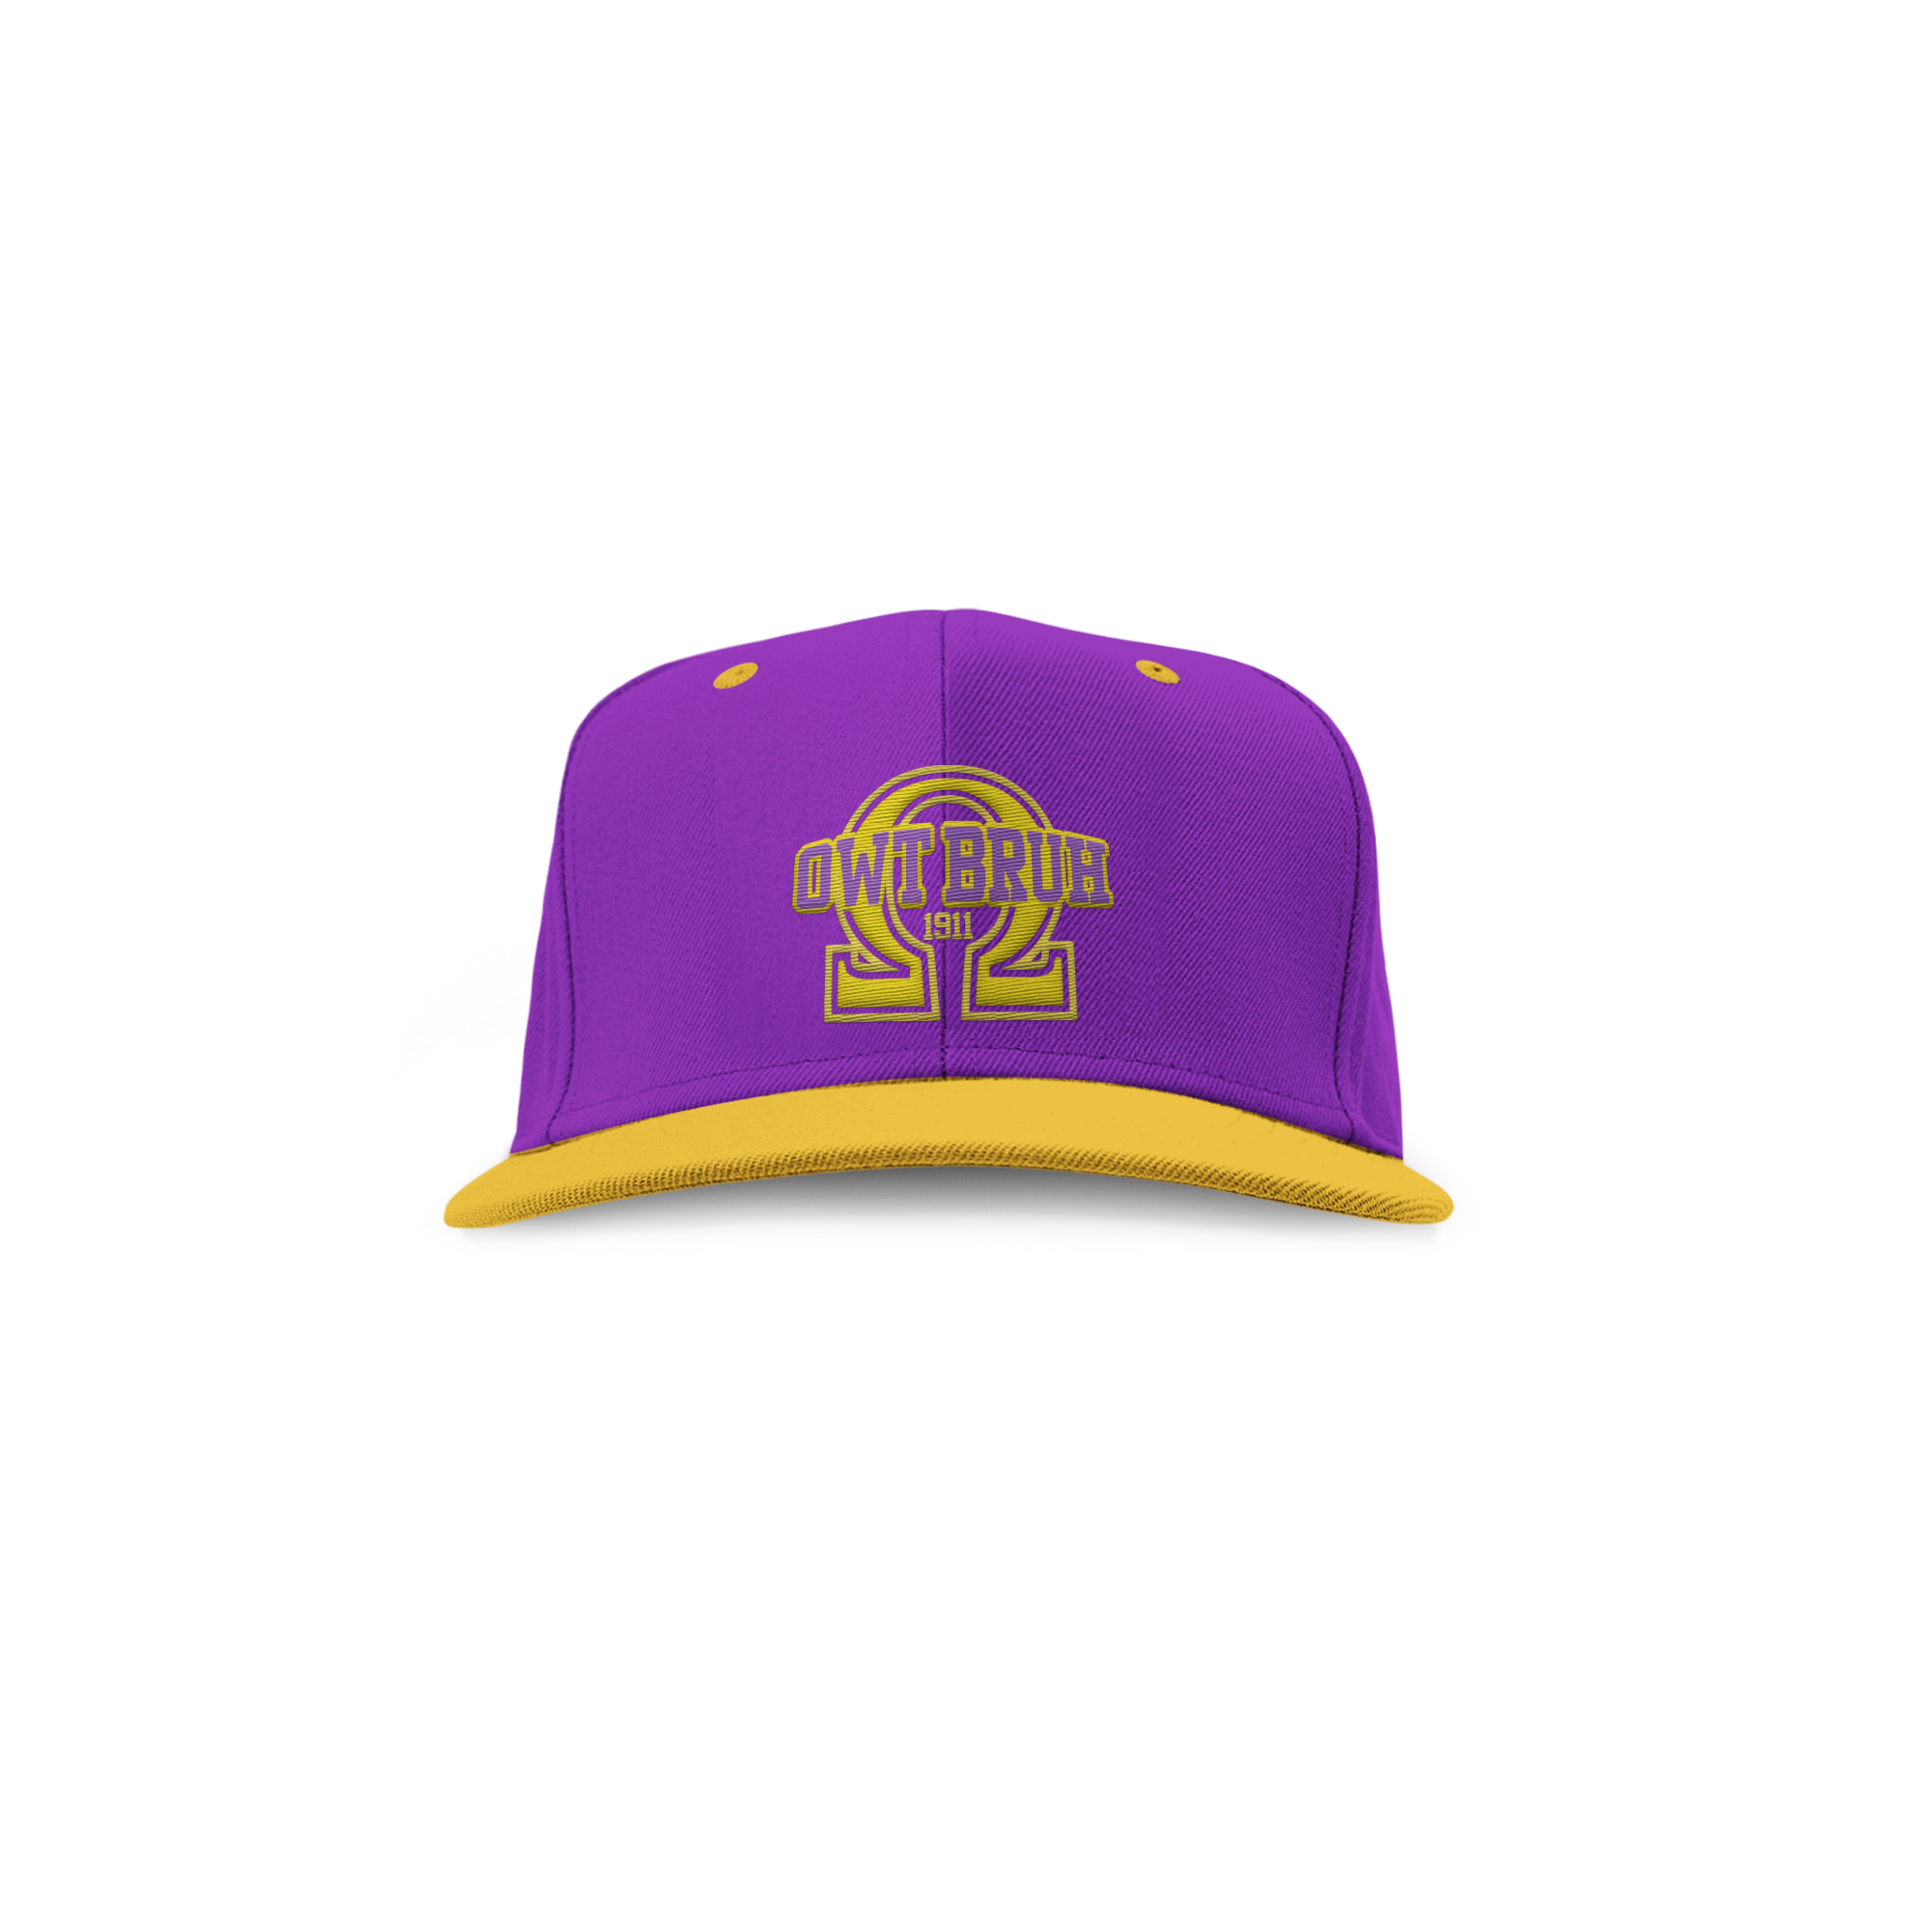 4a97bf4bbca Omega psi phi embroidered owt bruh snap back hat omega psi phi png  2000x2000 Omega psi